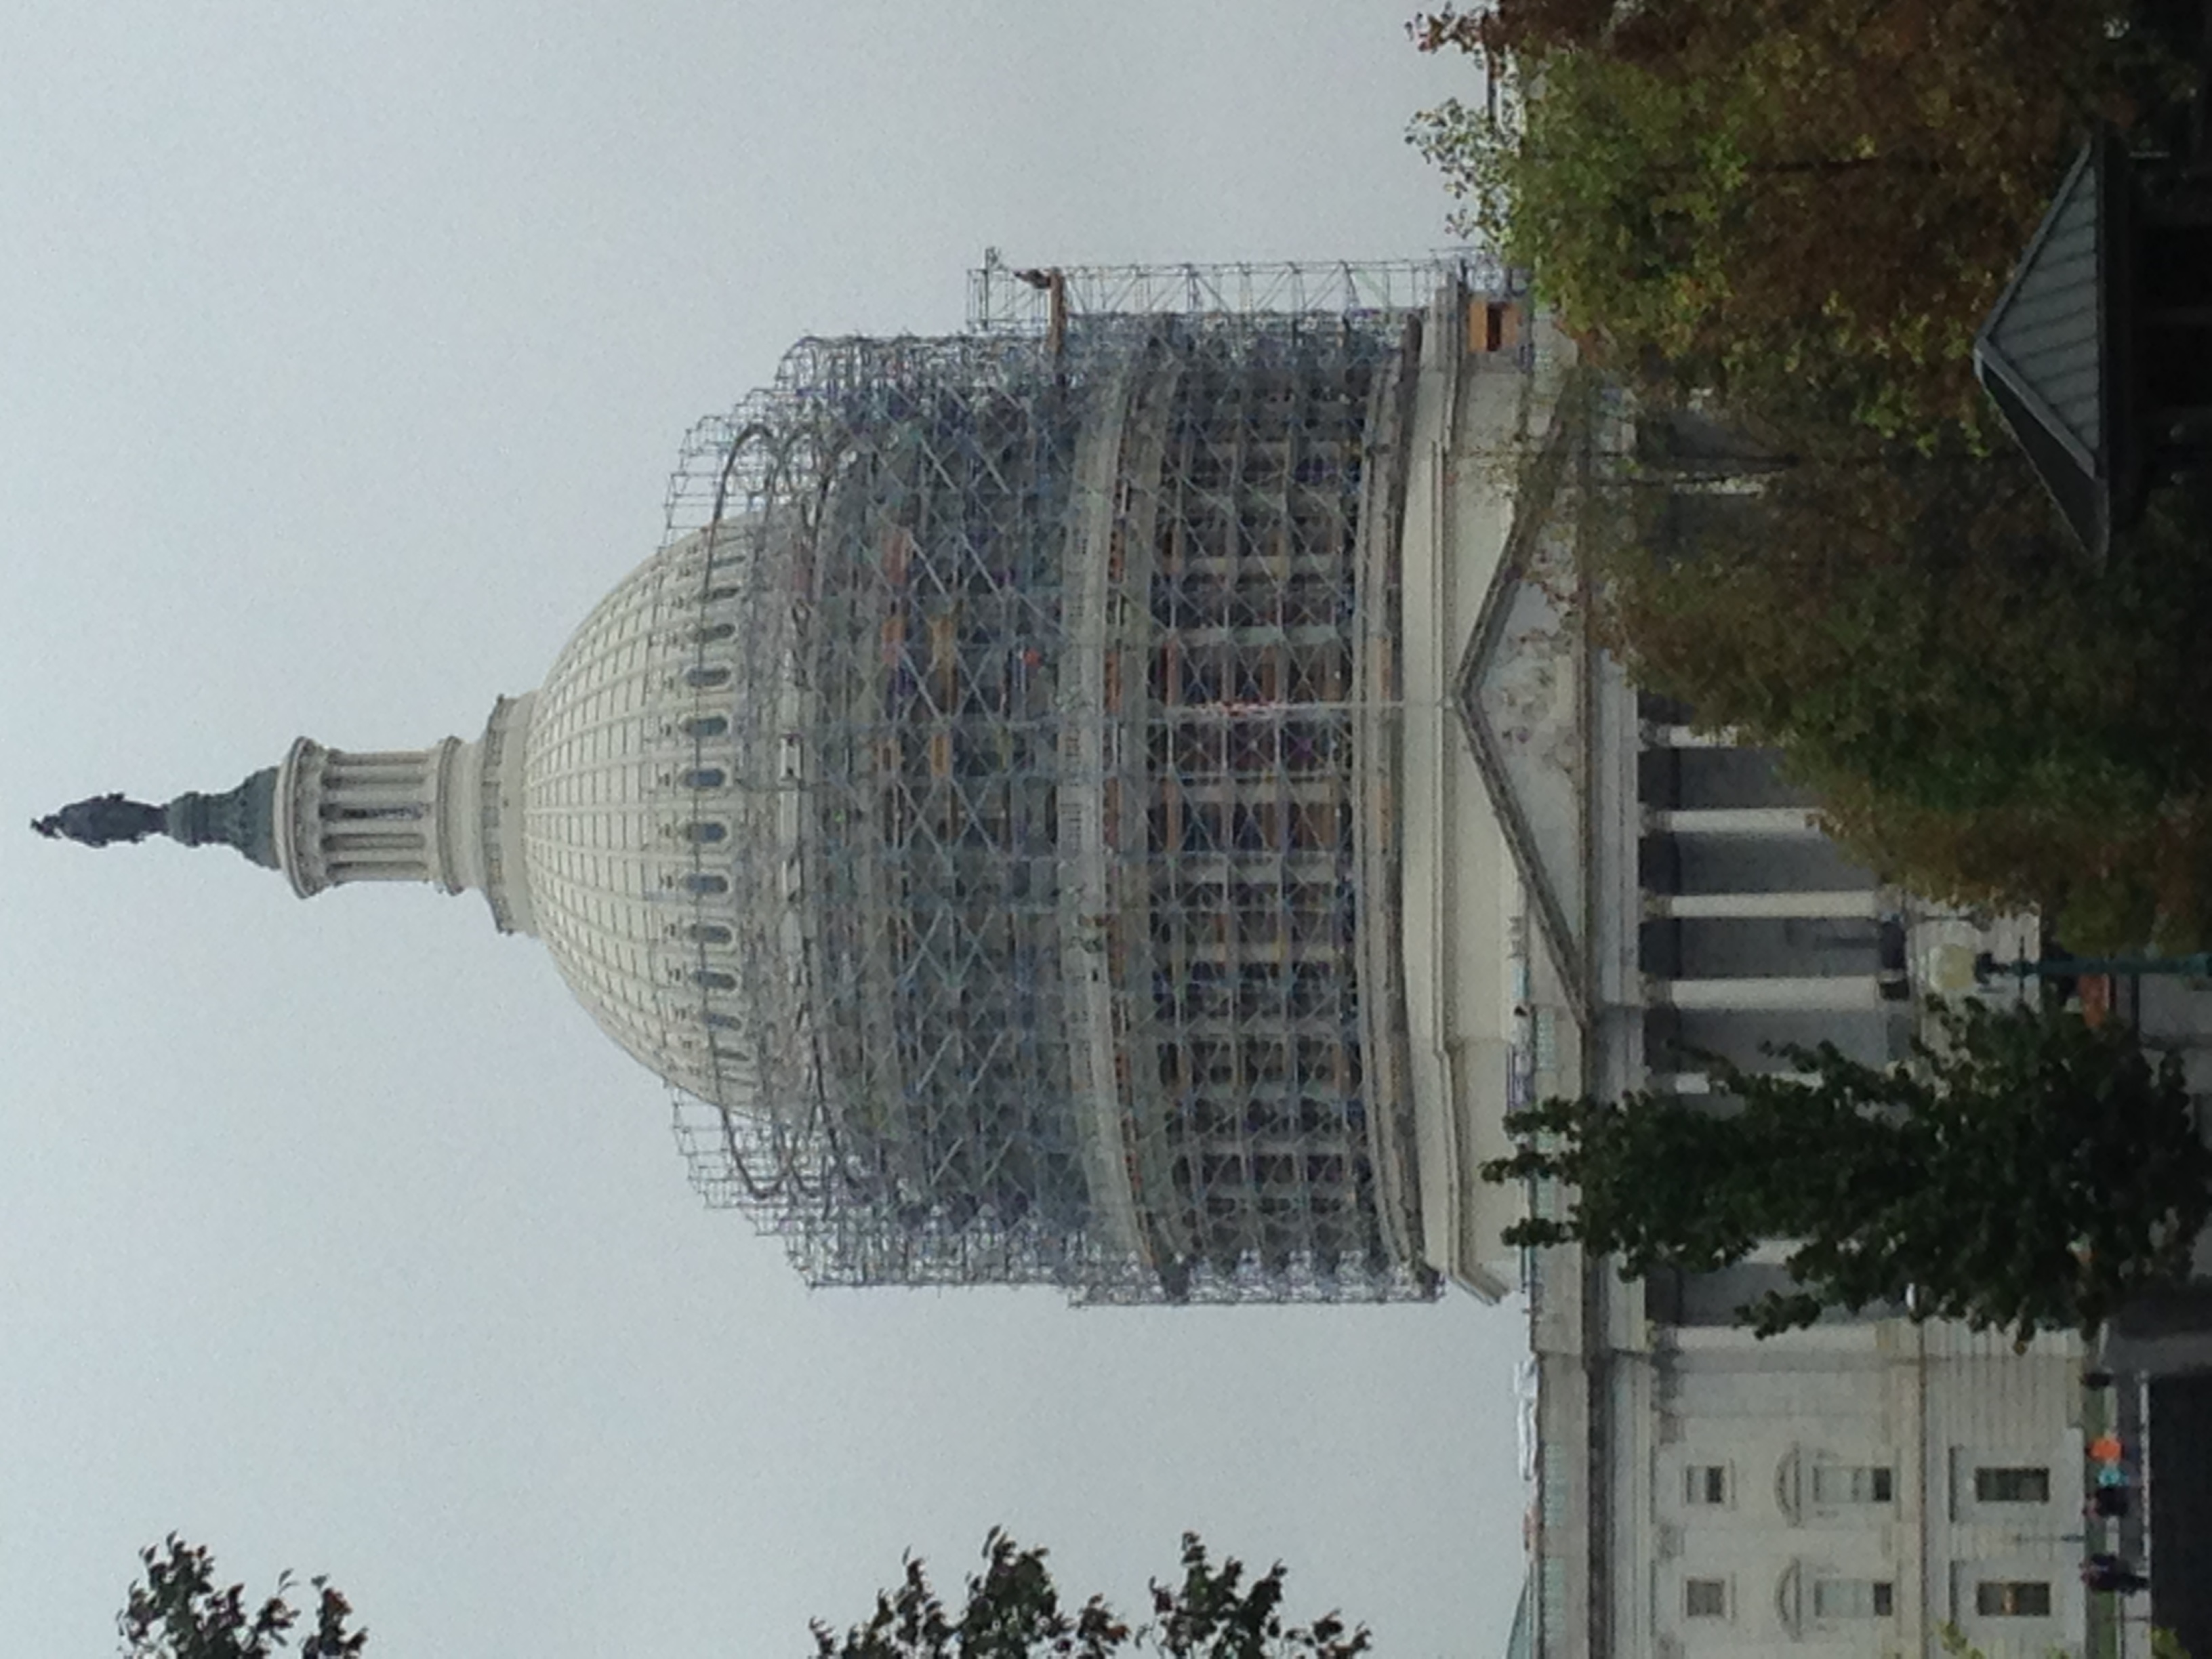 From the steps of the Library of Congress you can get a good look at the restoration work underway on the Capitol Dome.